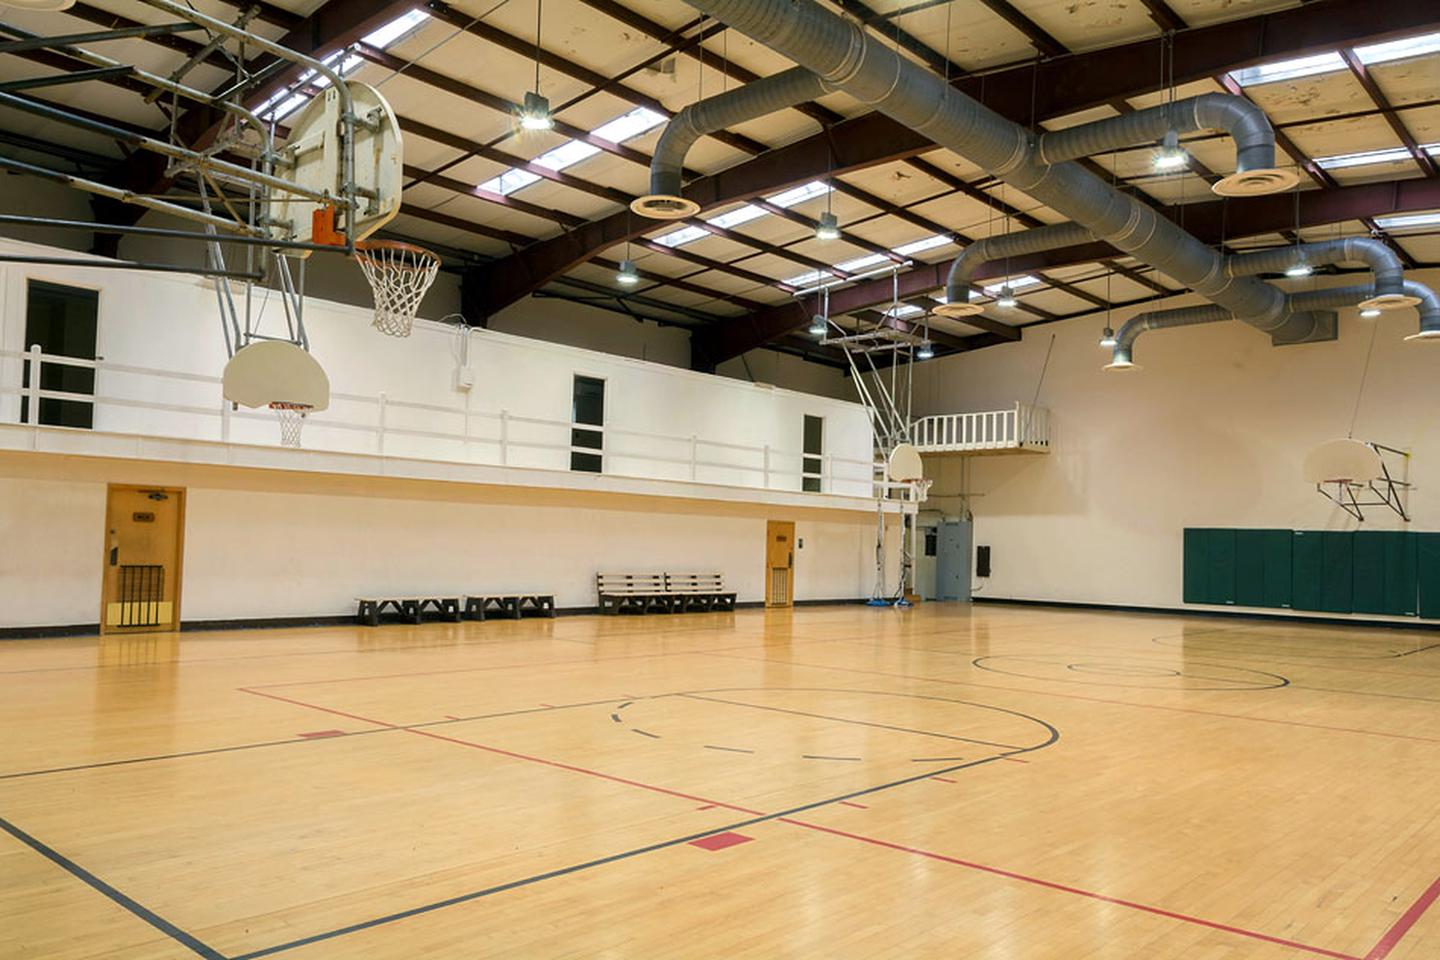 Interior of gym.  Wooden marked basketball court with 4 backboards/nets and 4 benches on sidelines. Metal beam ceiling with skylights. 3 doors visible to upper classrooms. Interior of gym.  Wooden marked basketball court with 4 backboards/nets and 4 benches on sidelines. Metal beam ceiling with skylights. 3 doors visible to upper classrooms. Women's and Men's bathrooms are accessible from the gym court.